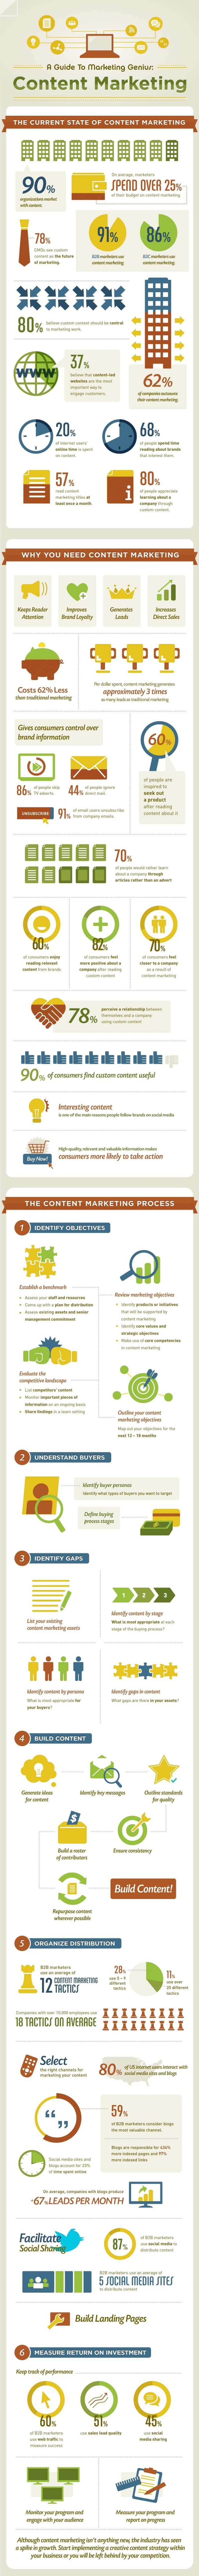 An infographic, showing different trends in content marketing.